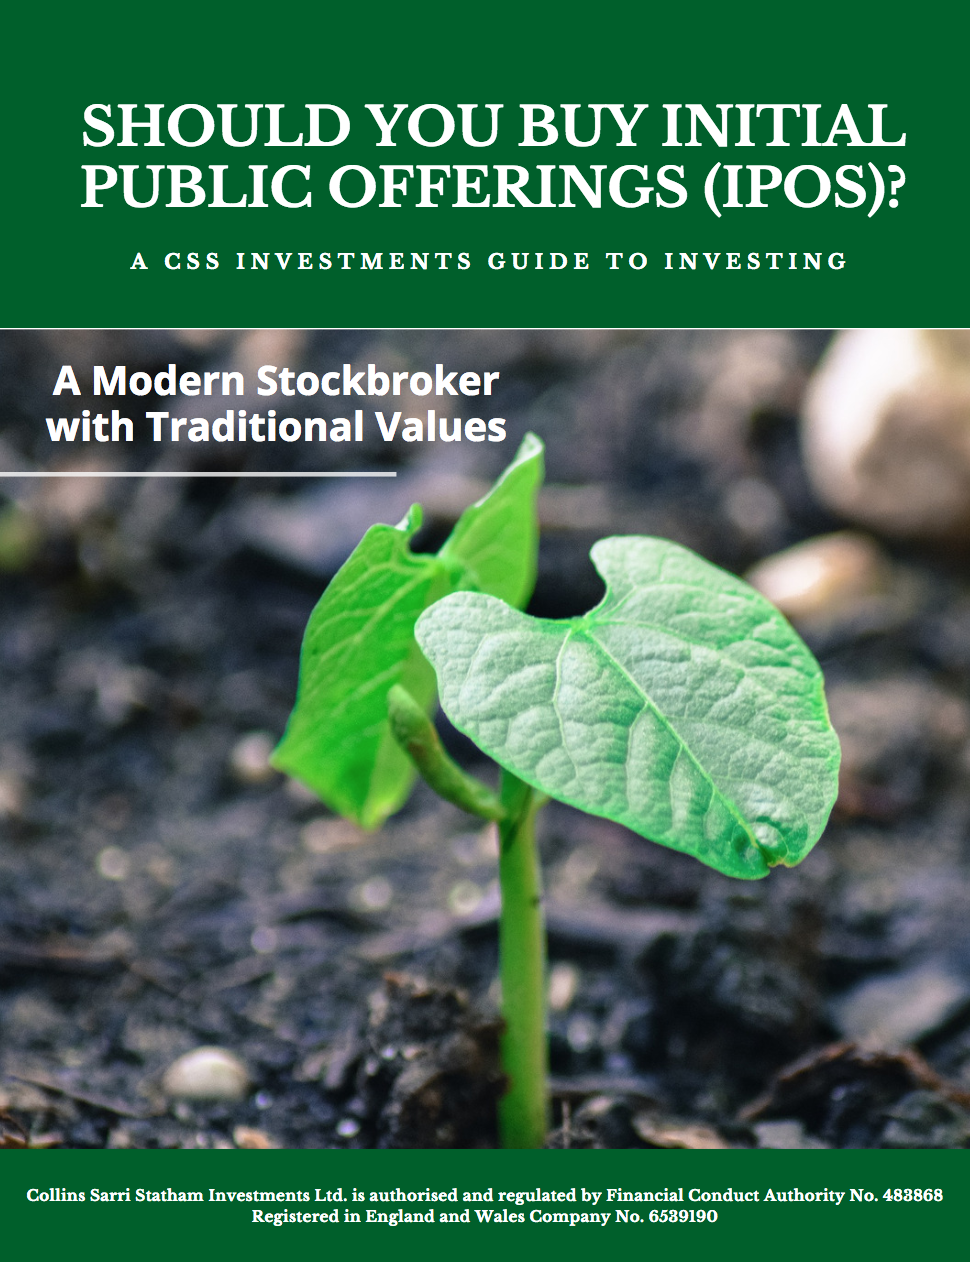 Should you buy Initial Public Offerings (IPOs)?